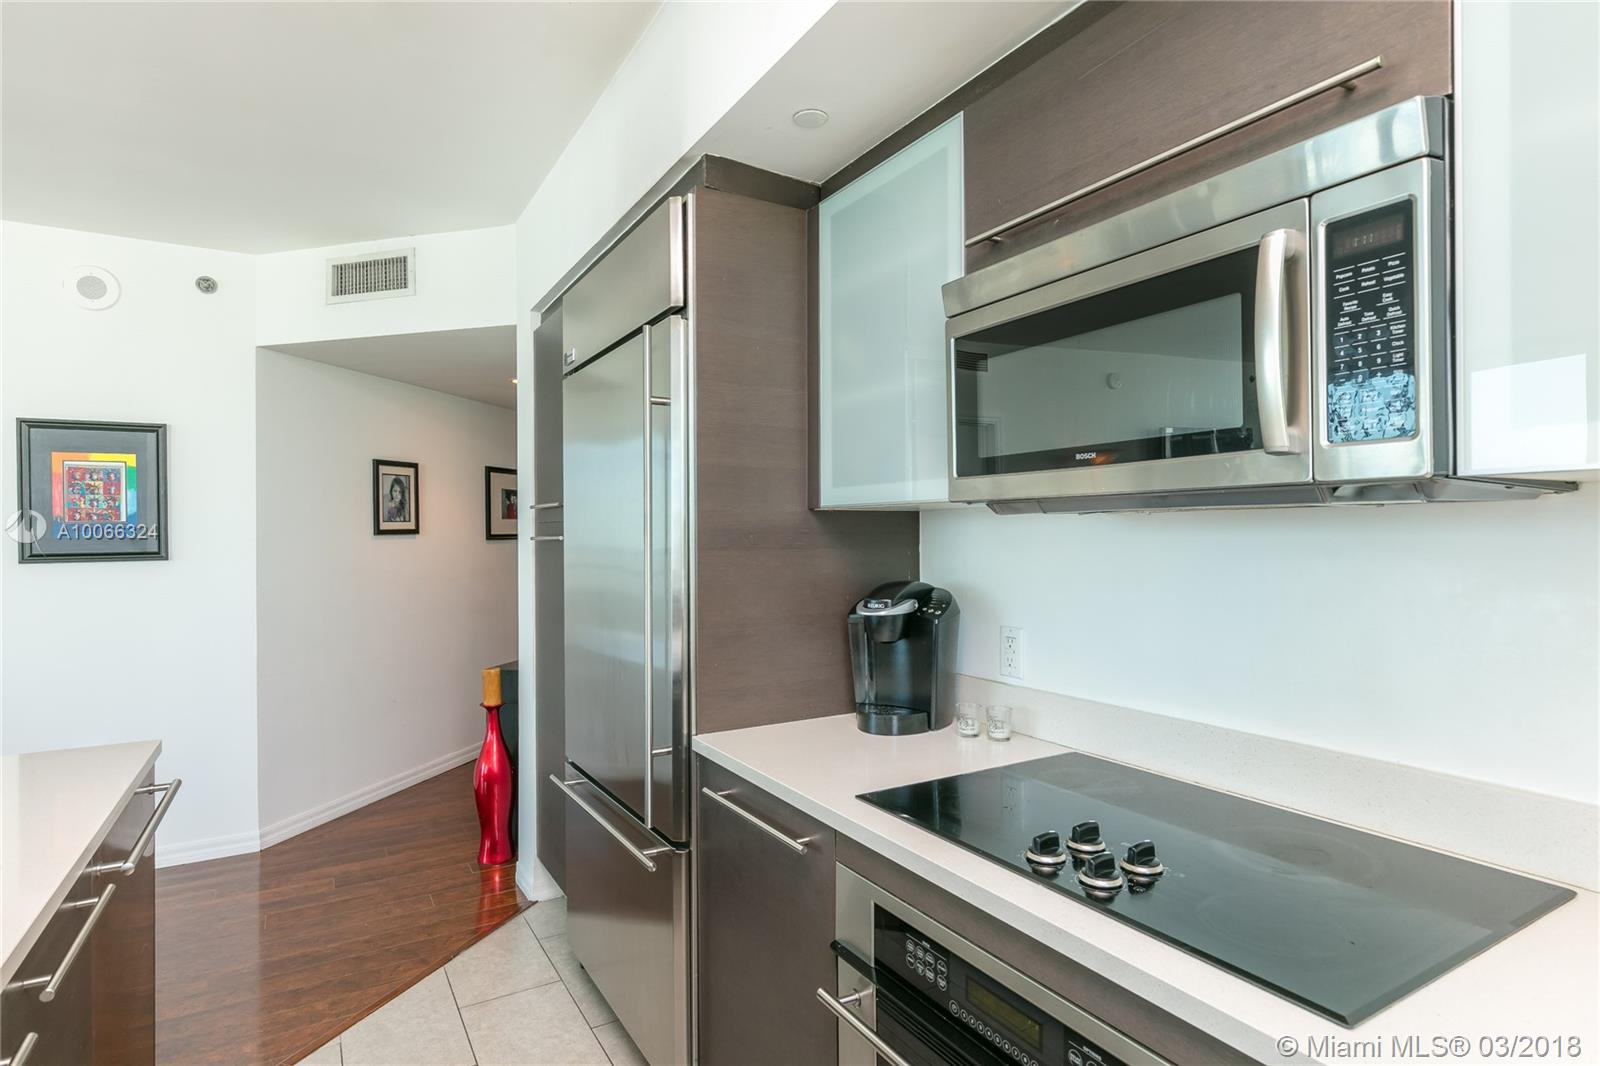 500 Brickell Avenue and 55 SE 6 Street, Miami, FL 33131, 500 Brickell #3301, Brickell, Miami A10066324 image #23